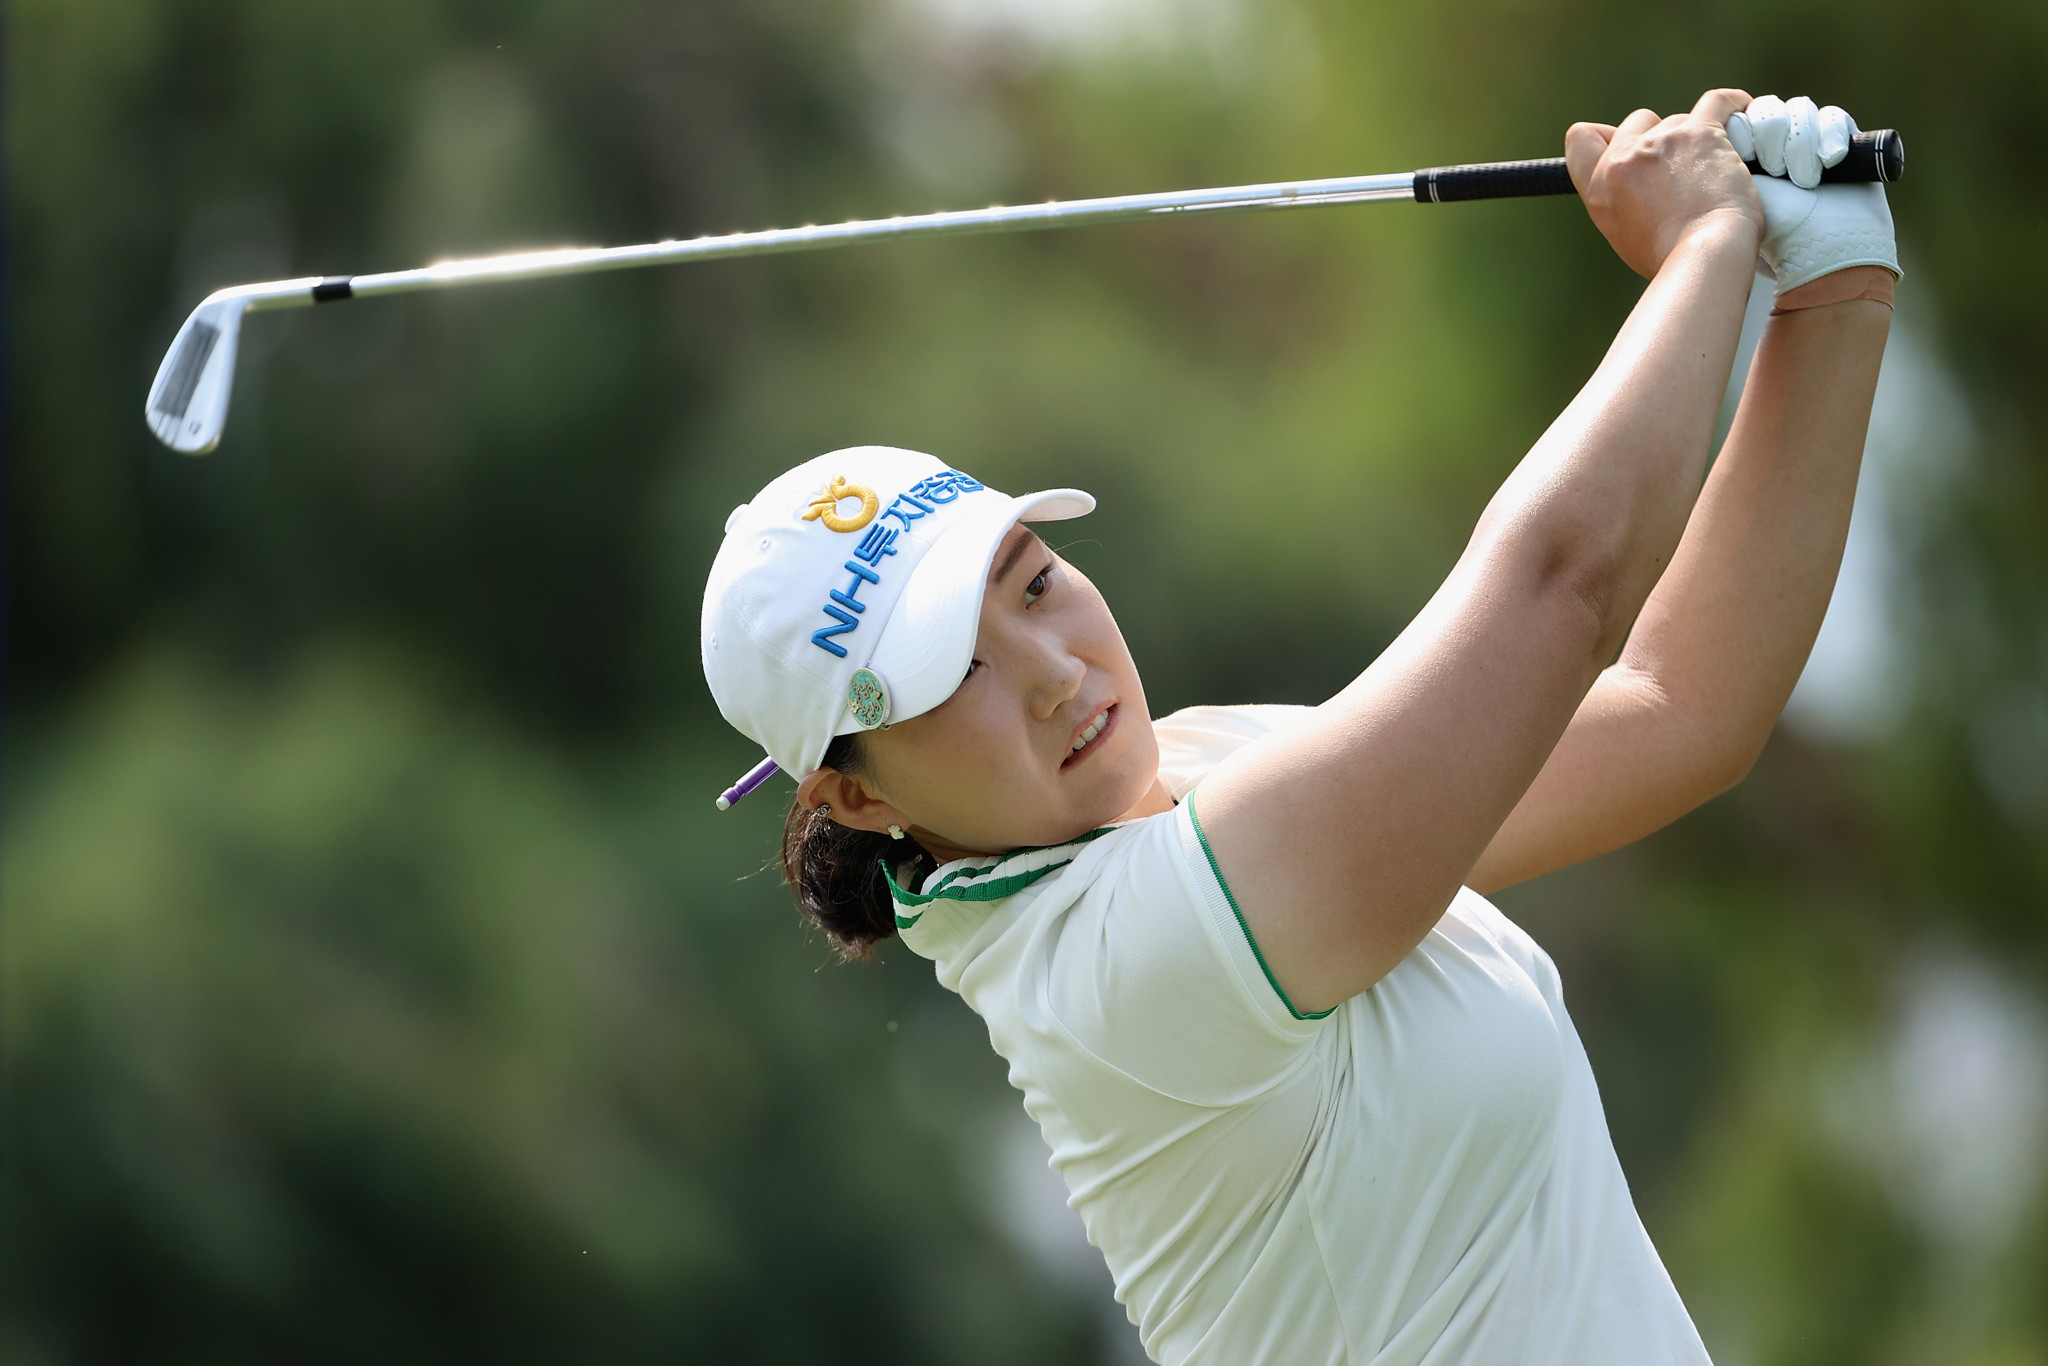 Lee aiming for second major title at Women's PGA Championship